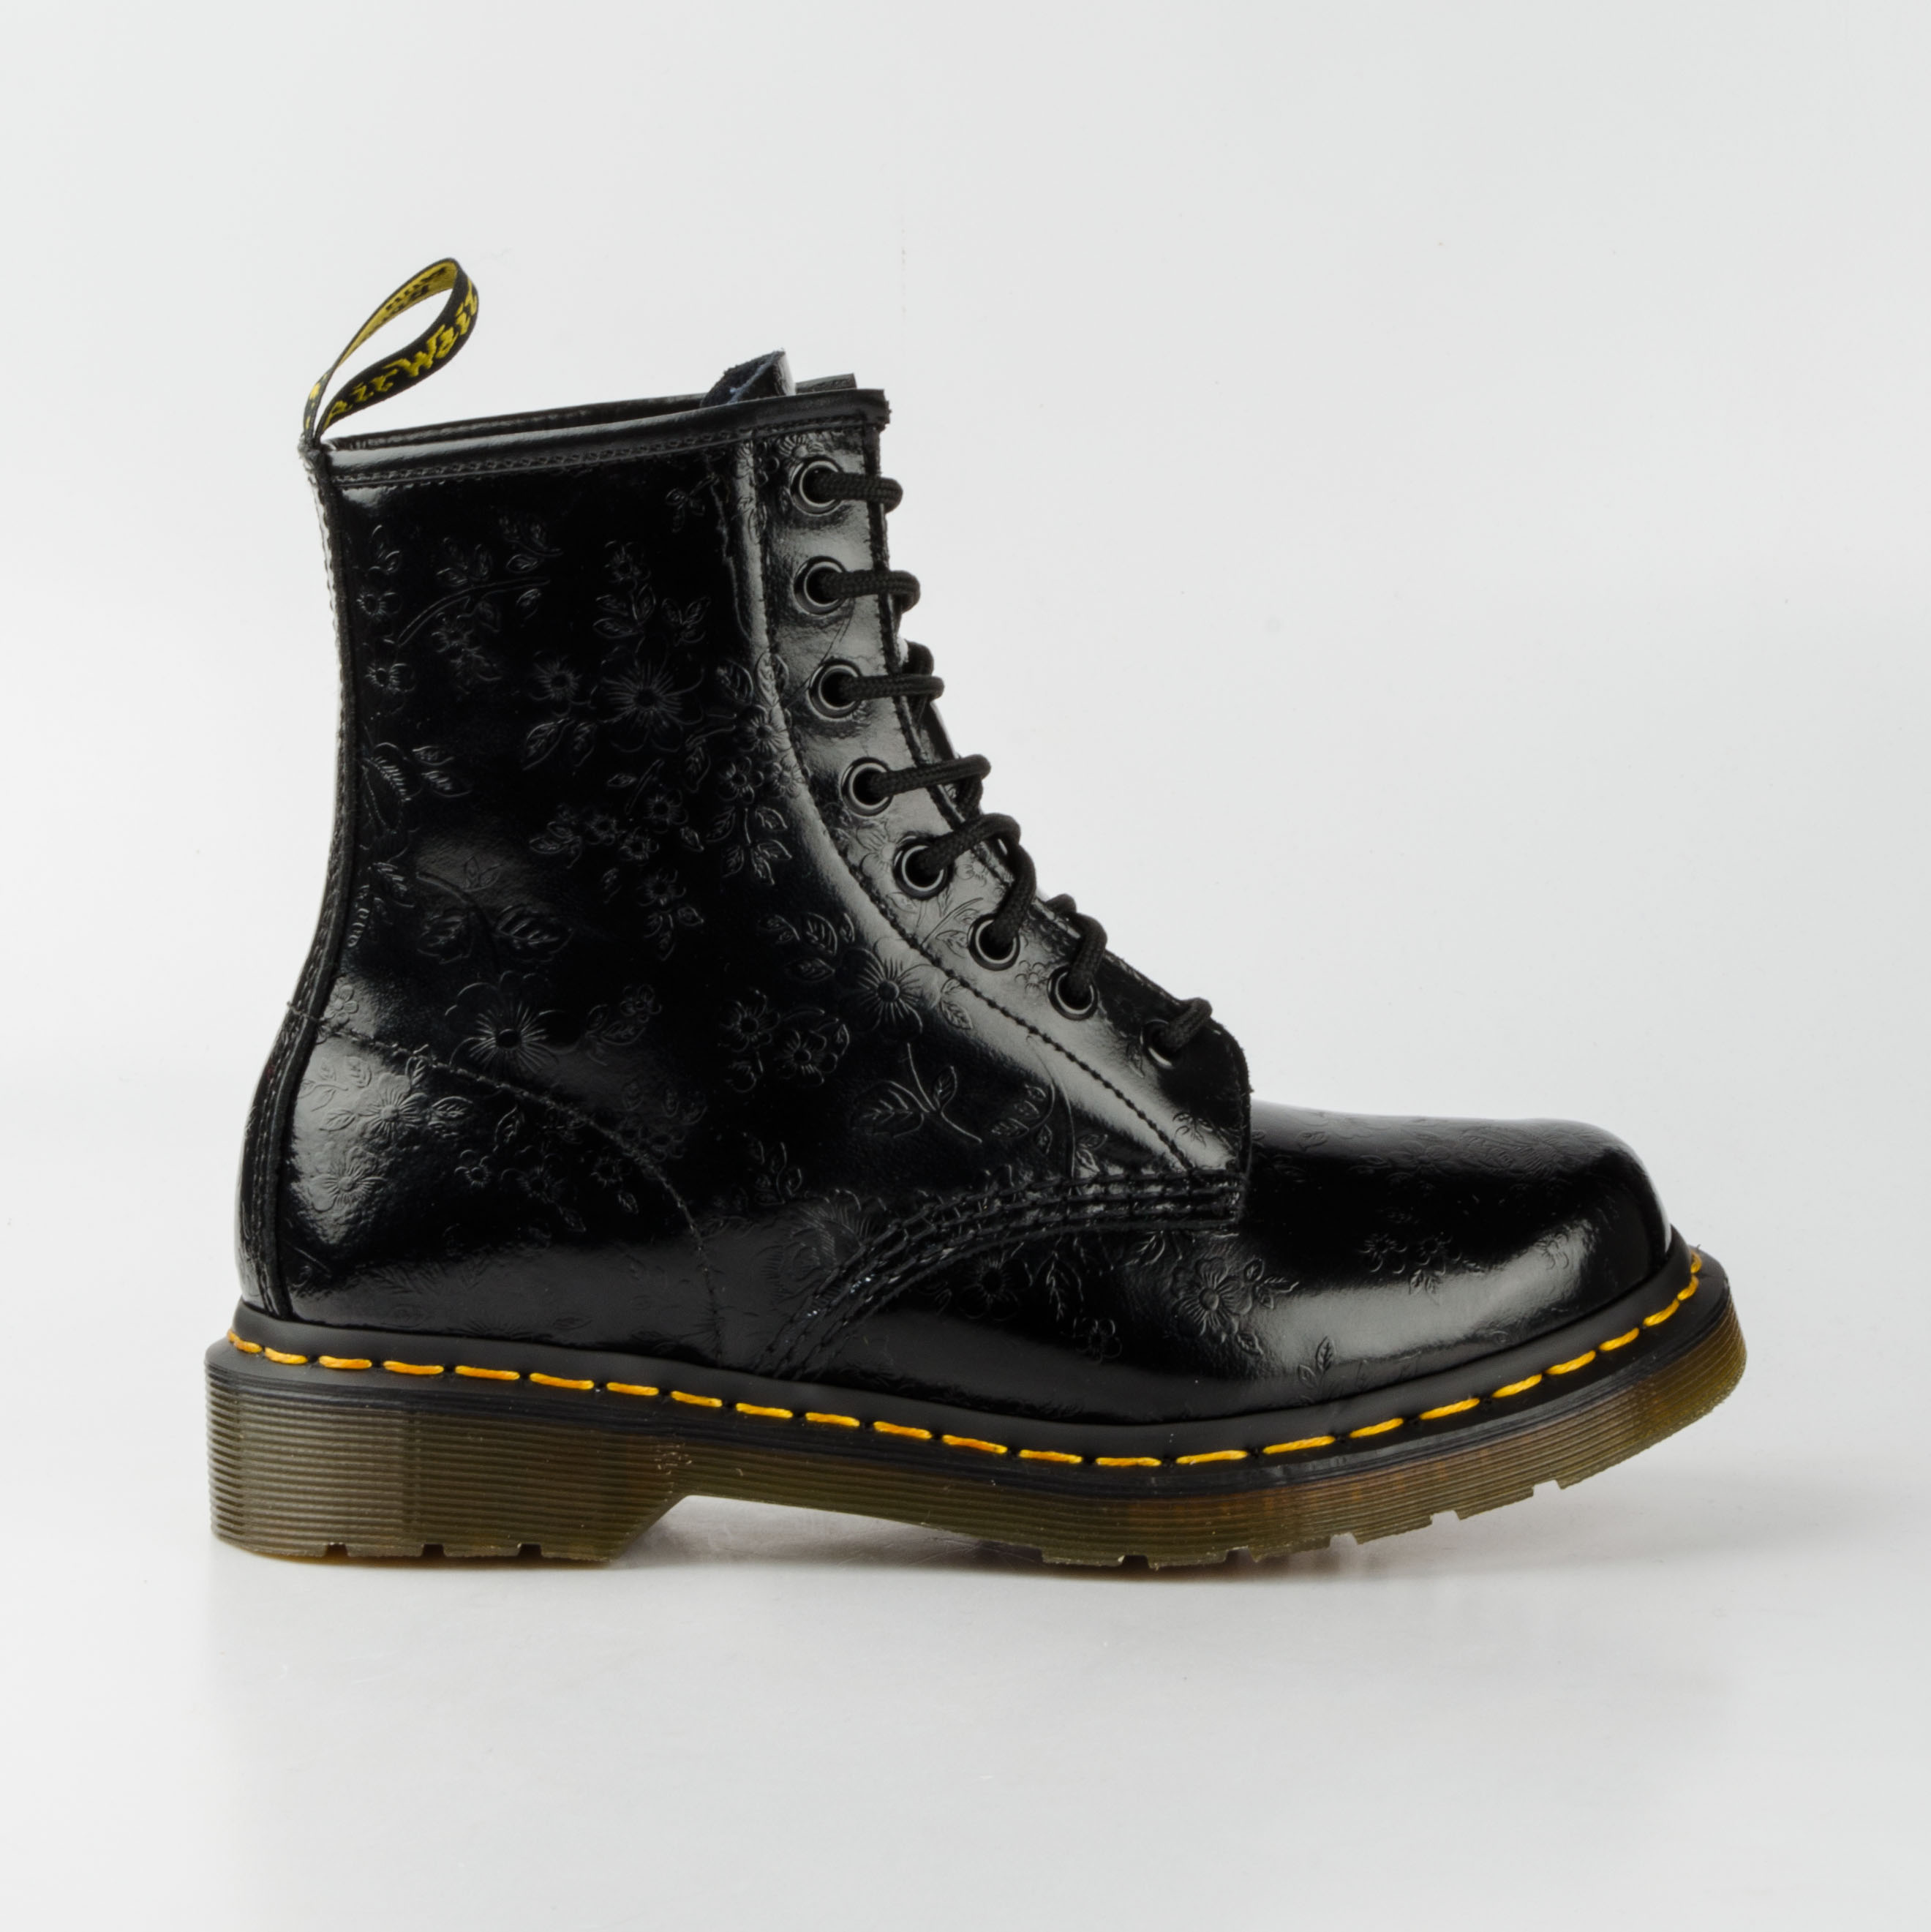 dr doc martens 1460 8 loch stiefel 8eye boots schwarz qq flowers leder 11821018 ebay. Black Bedroom Furniture Sets. Home Design Ideas